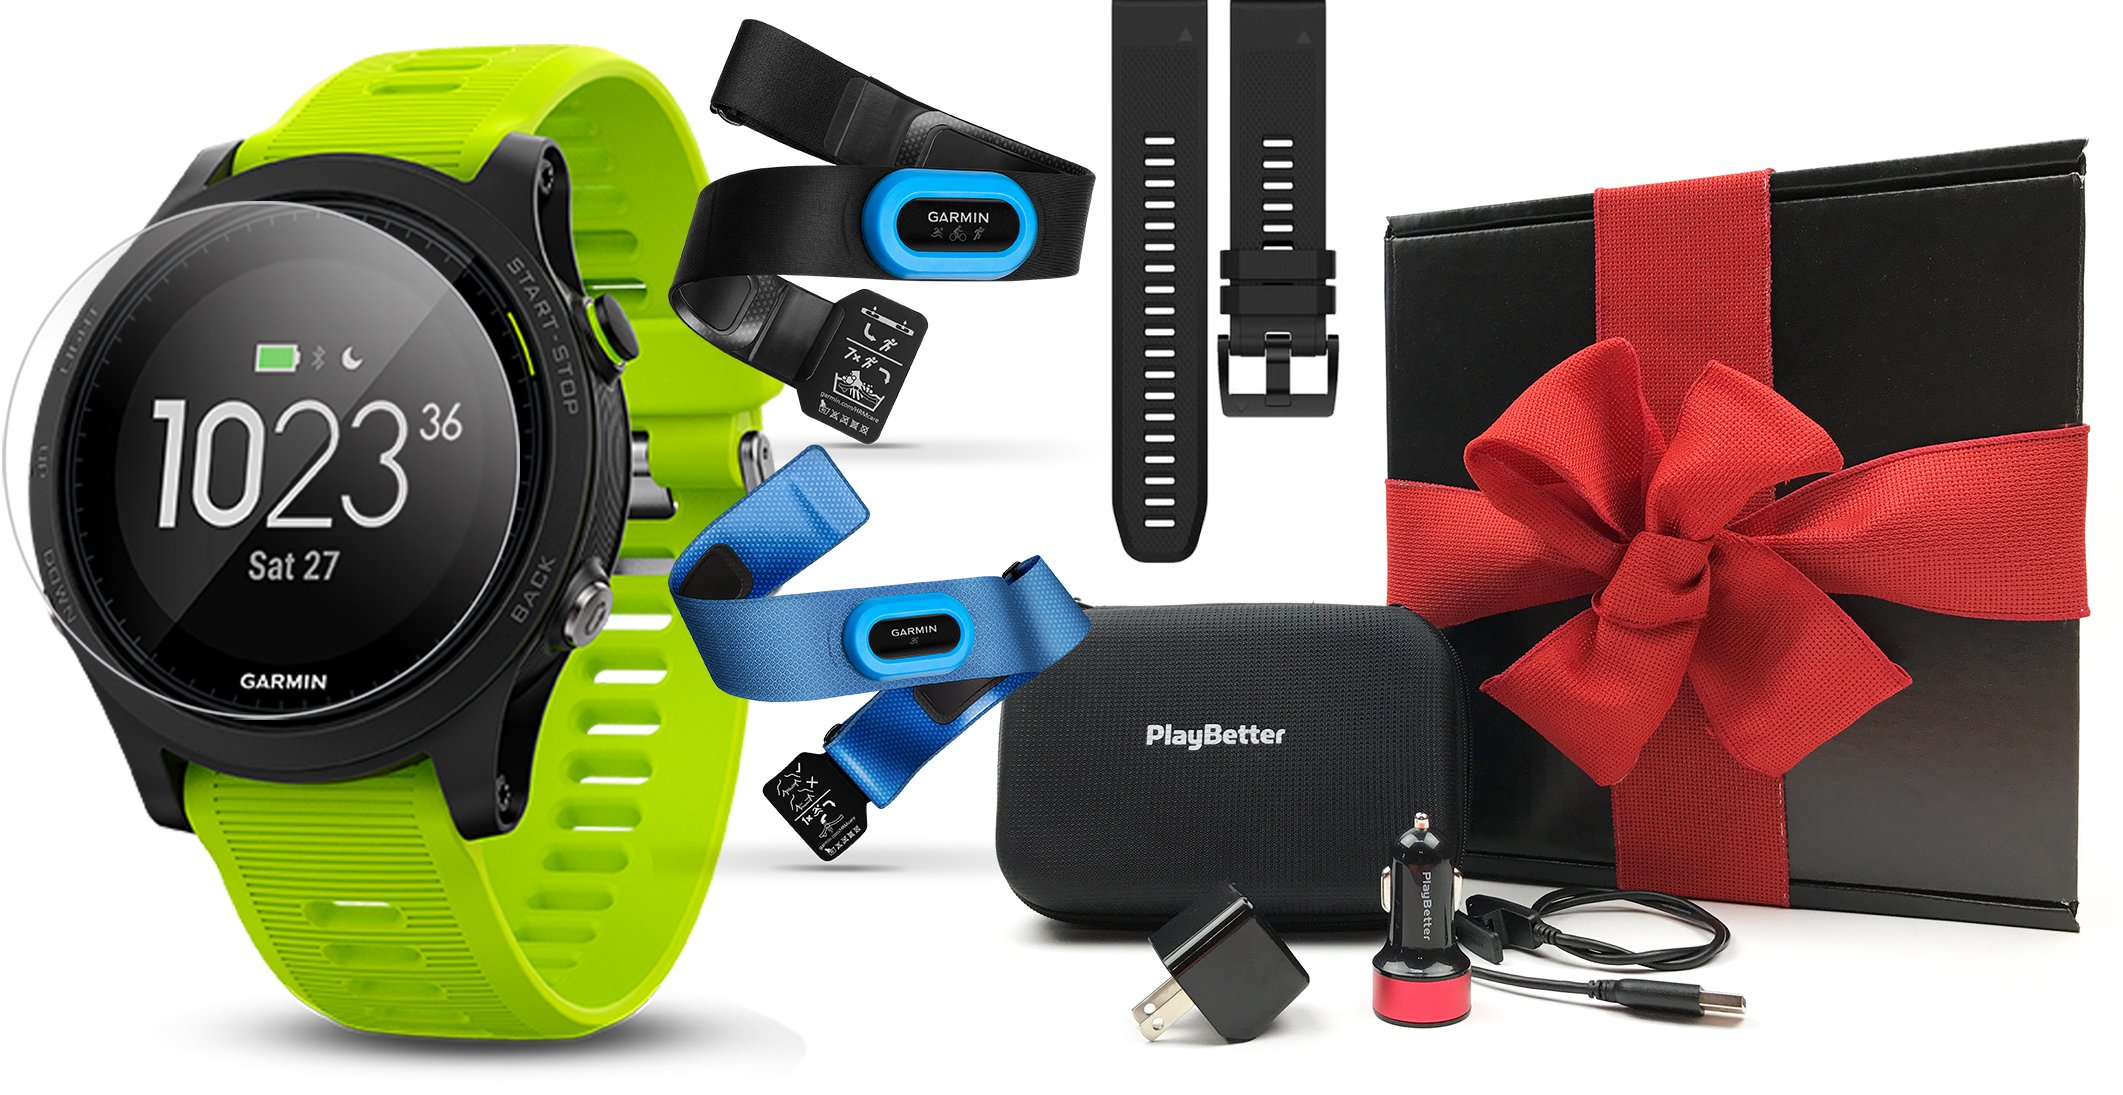 Garmin Forerunner 935 (Tri-Bundle) Gift Box | Includes HRM Tri & Swim Chest Straps, Extra Watch Band, Glass Screen Protectors, PlayBetter USB Car/Wall Adapters, Protective Case | GPS Running Watch